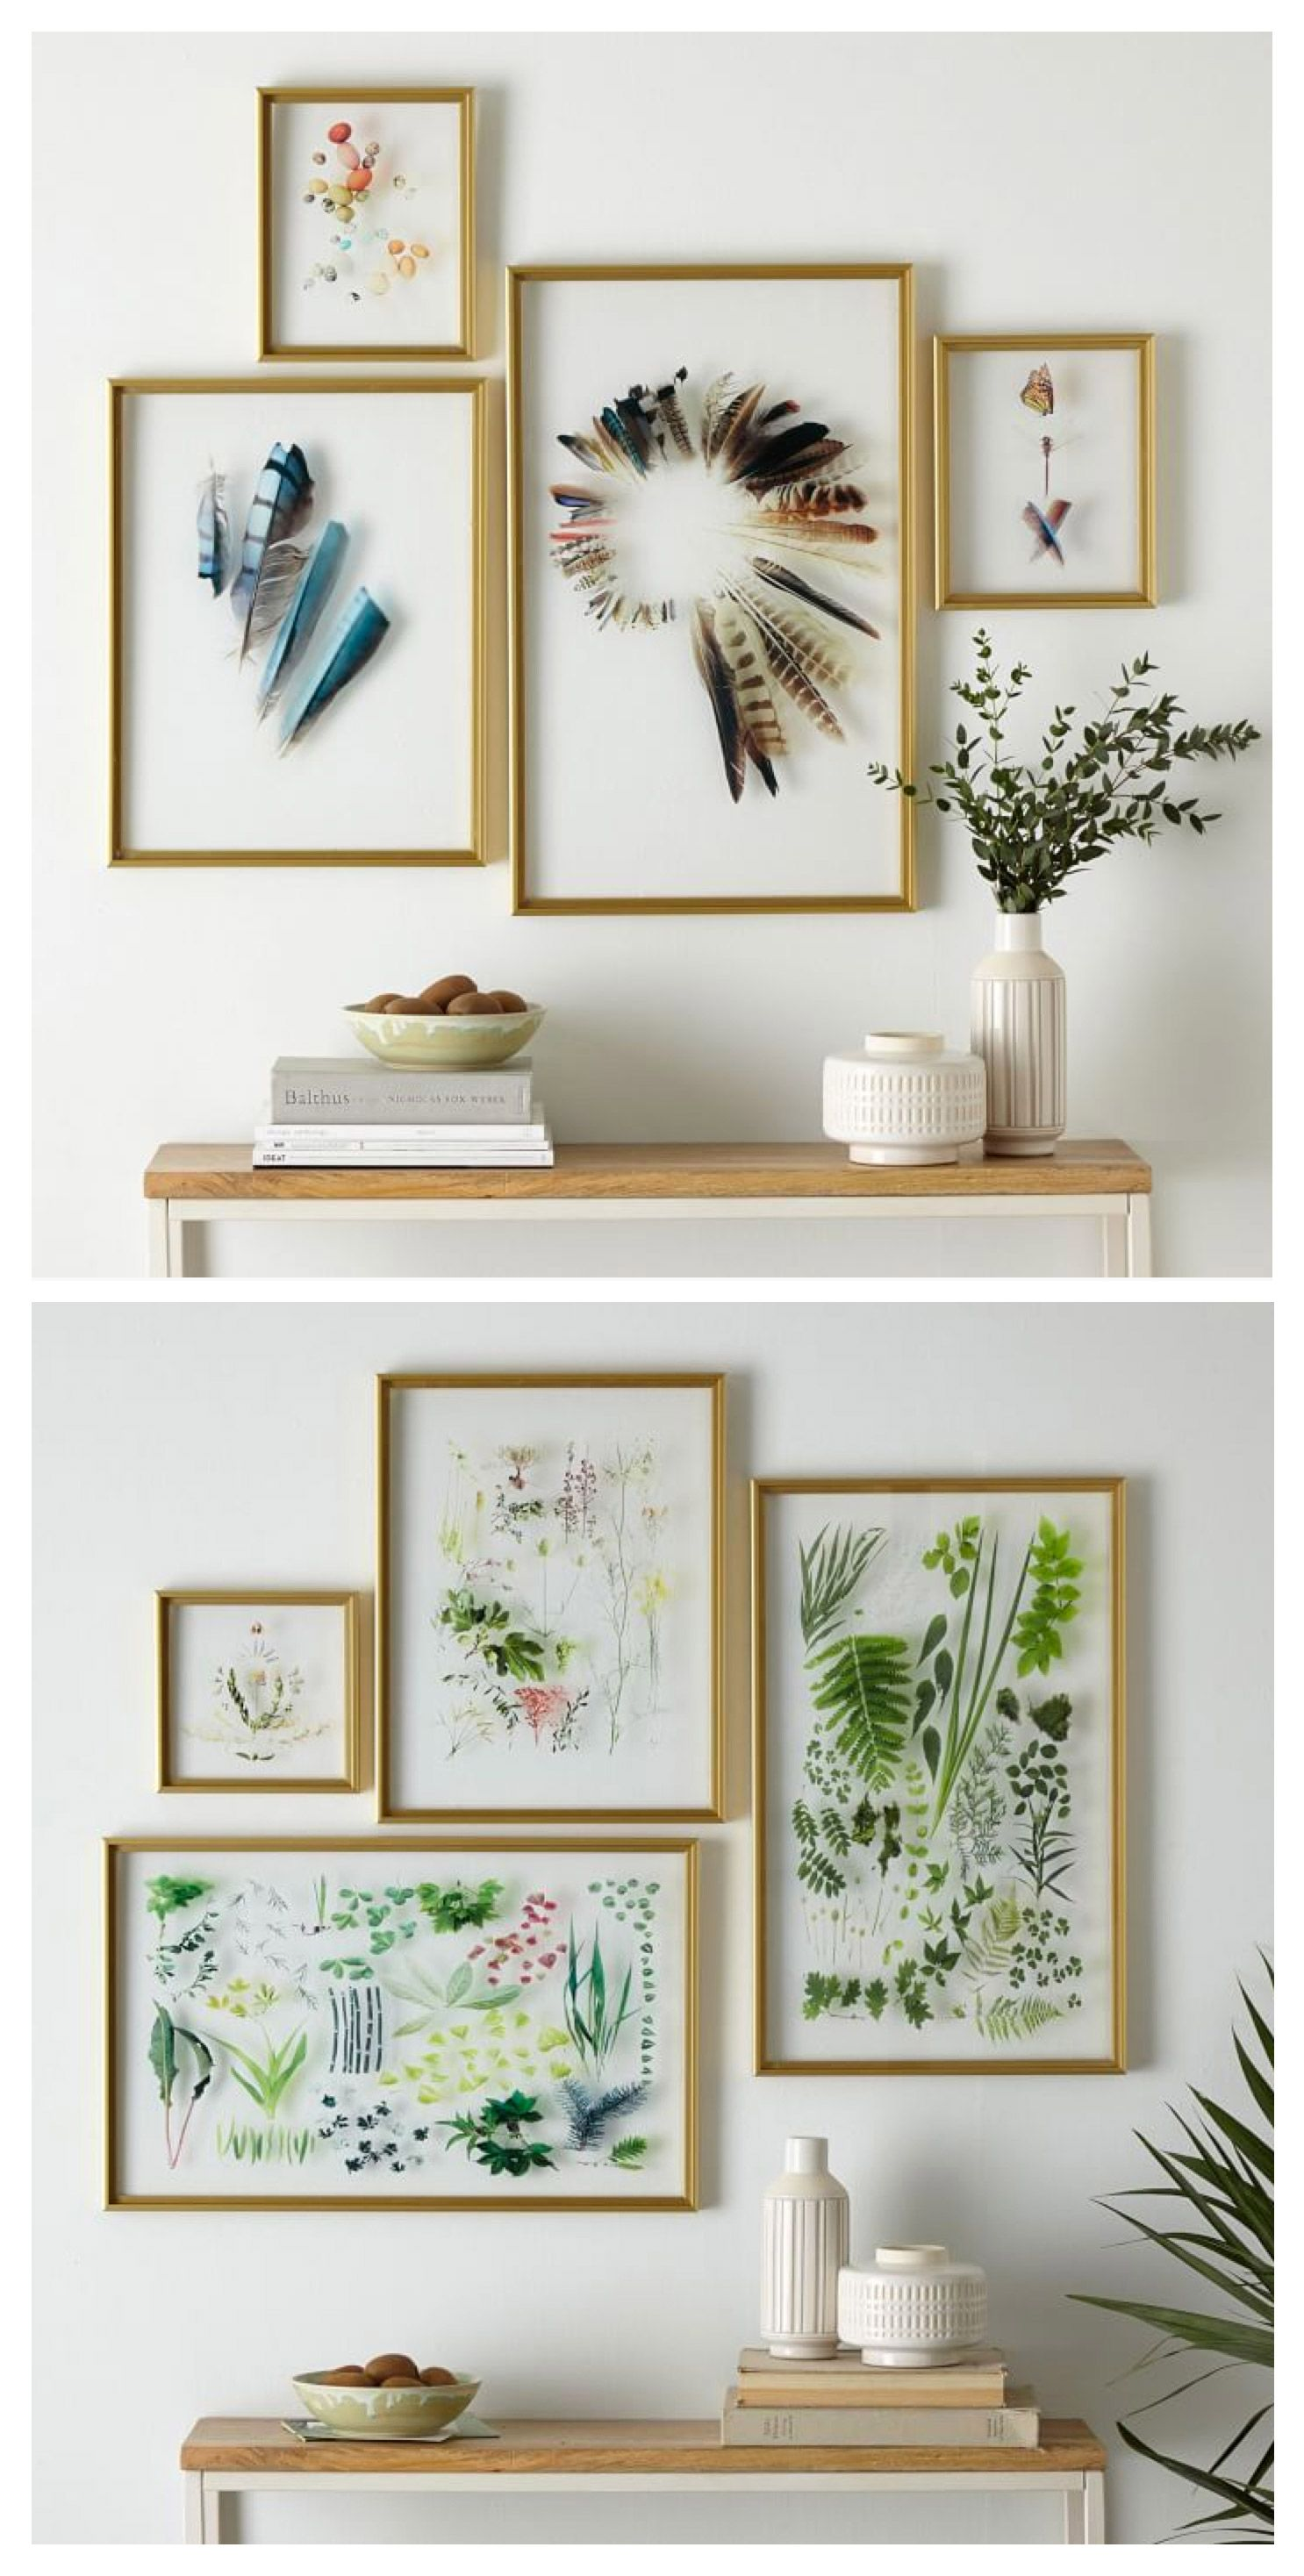 Home interiors and gifts framed art - A Collection Of Acrylic Wall Hangings Using My Still Images Was Launched By West Elm In